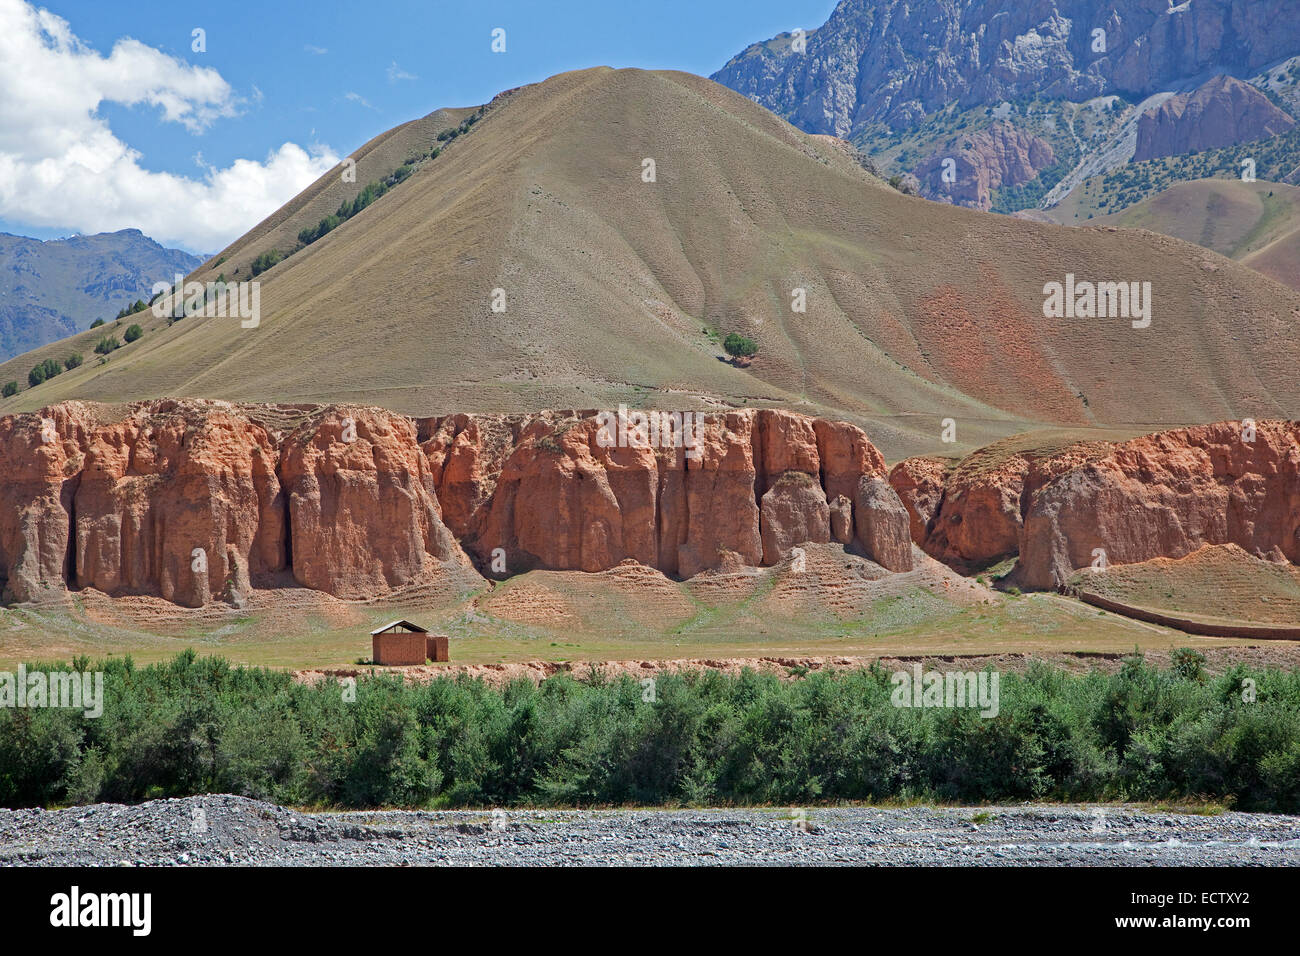 Red sandstone formations in the mountains of the Osh Province, Kyrgyzstan - Stock Image